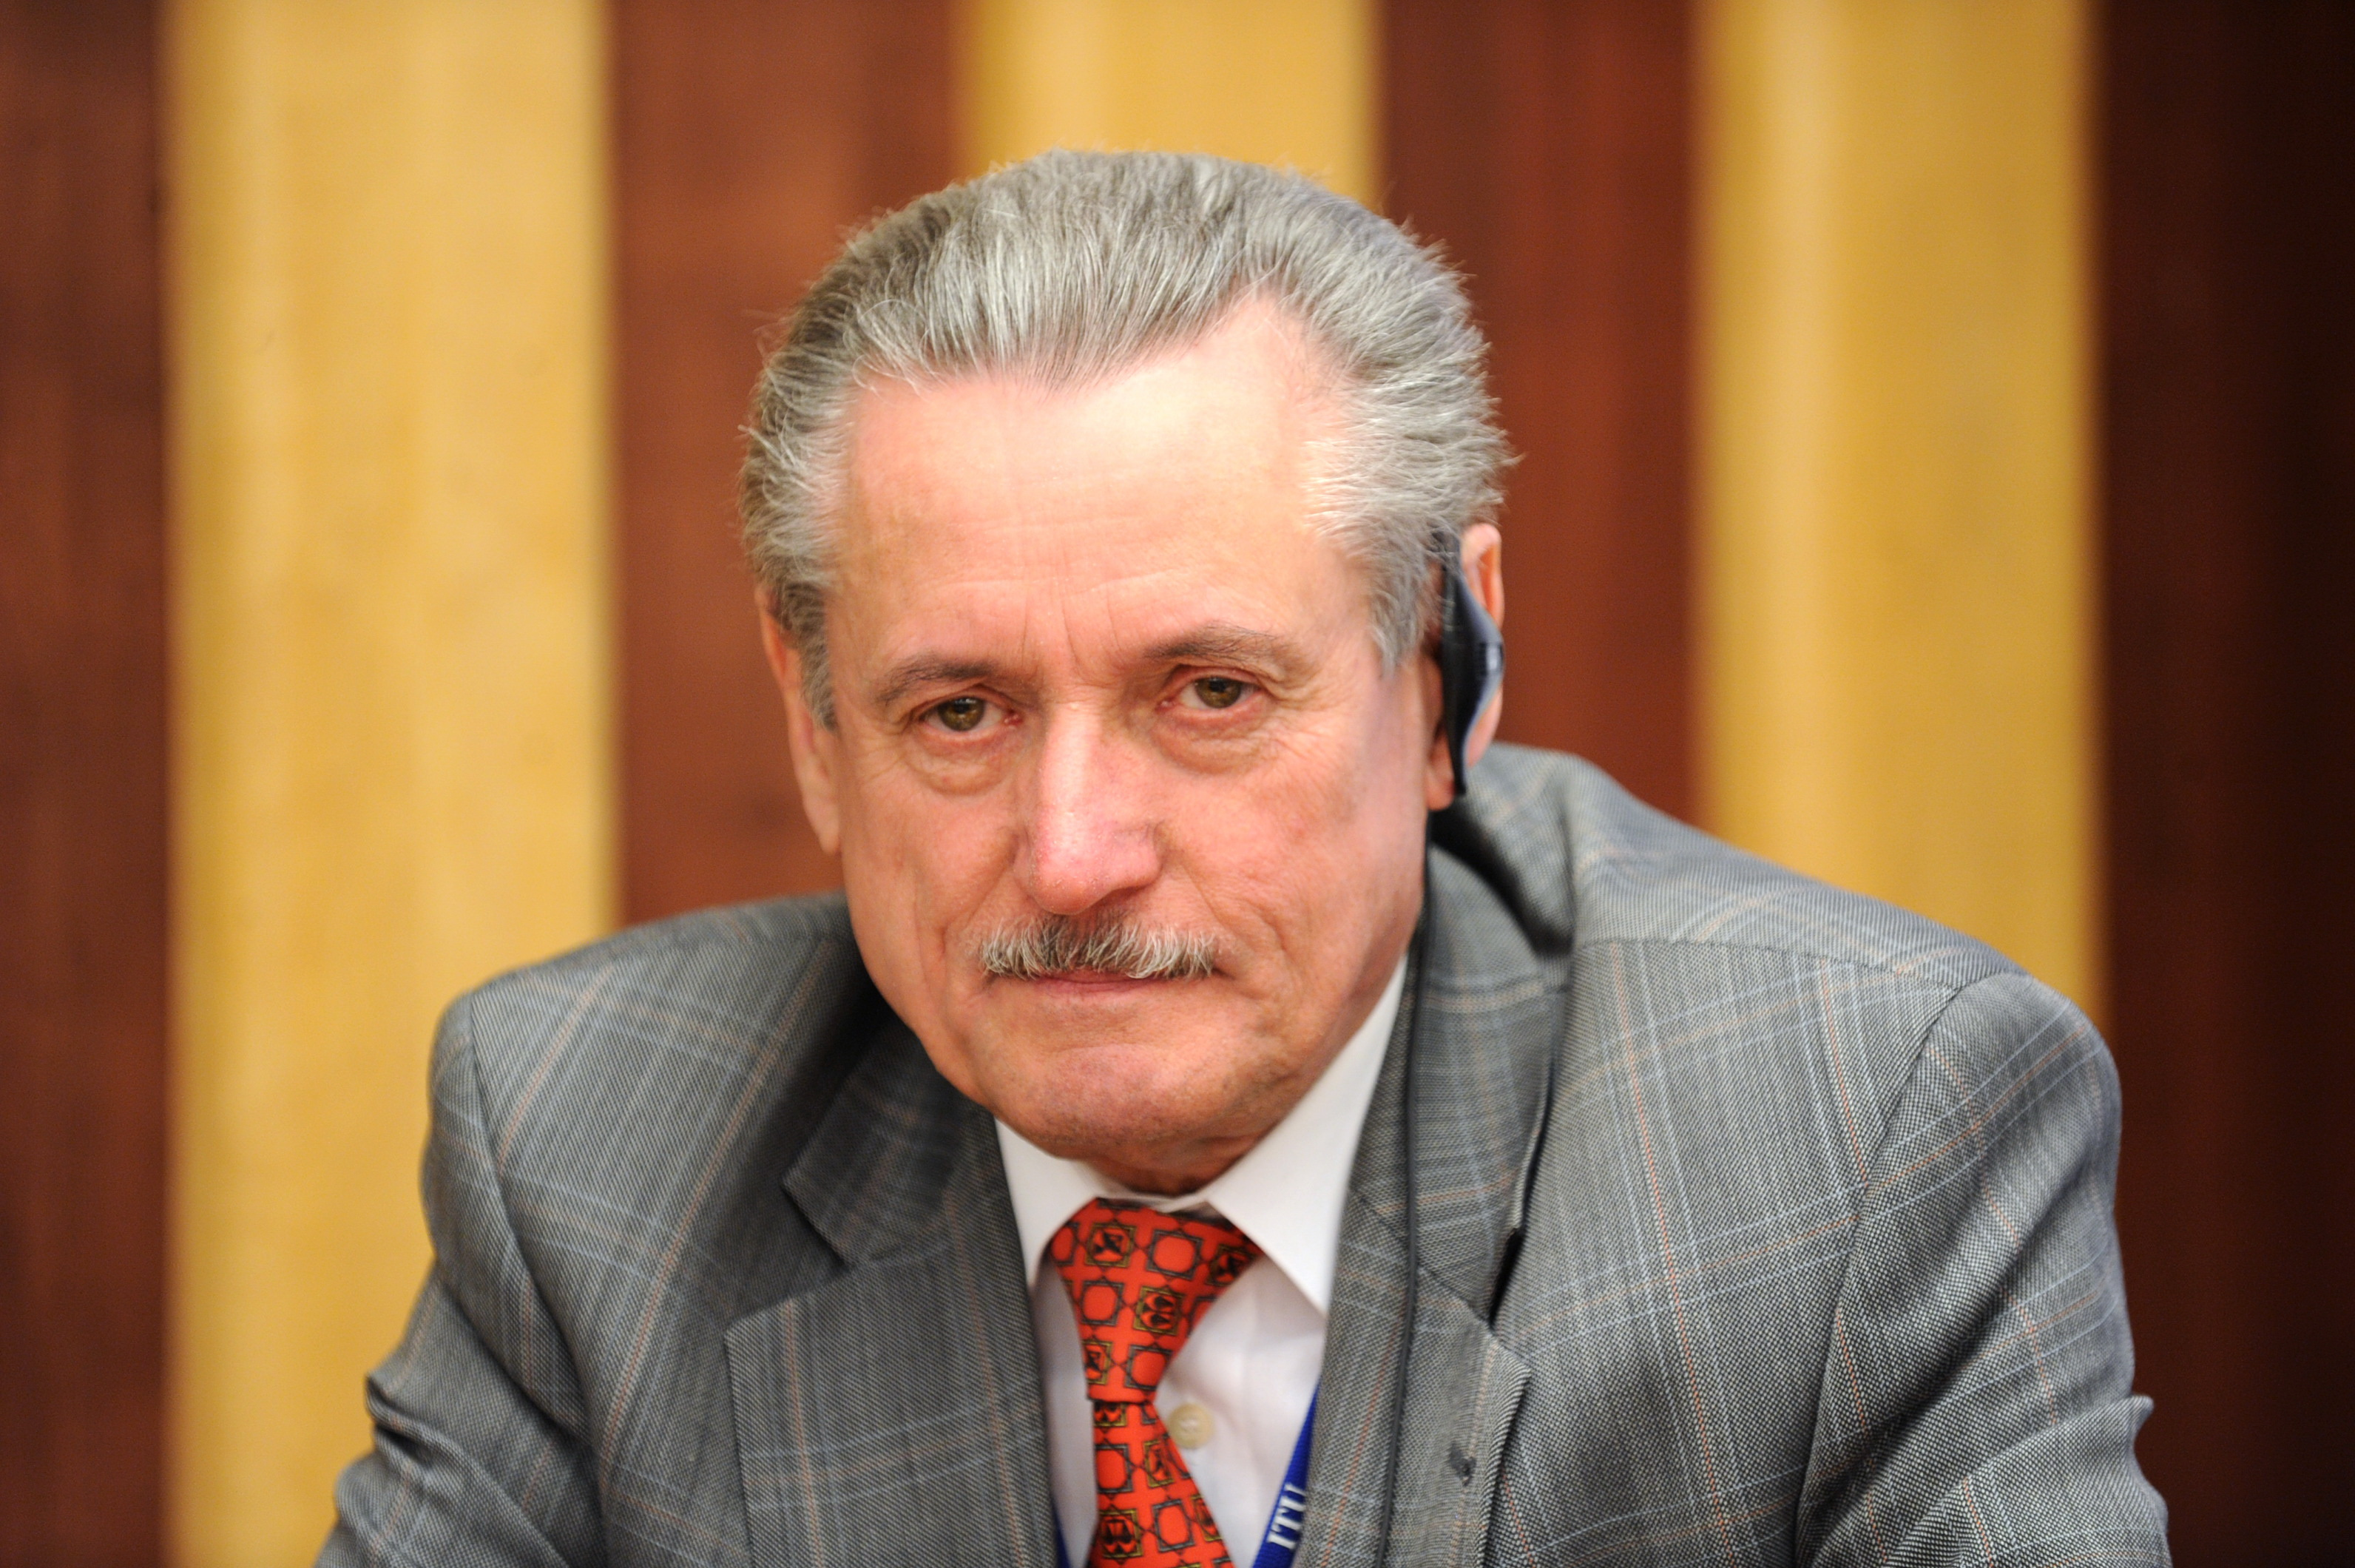 Mr Valery Timofeev, Director of the ITU Radiocommunication Bureau, at the UN Inter-Agency Meeting on Outer Space Activities 2010